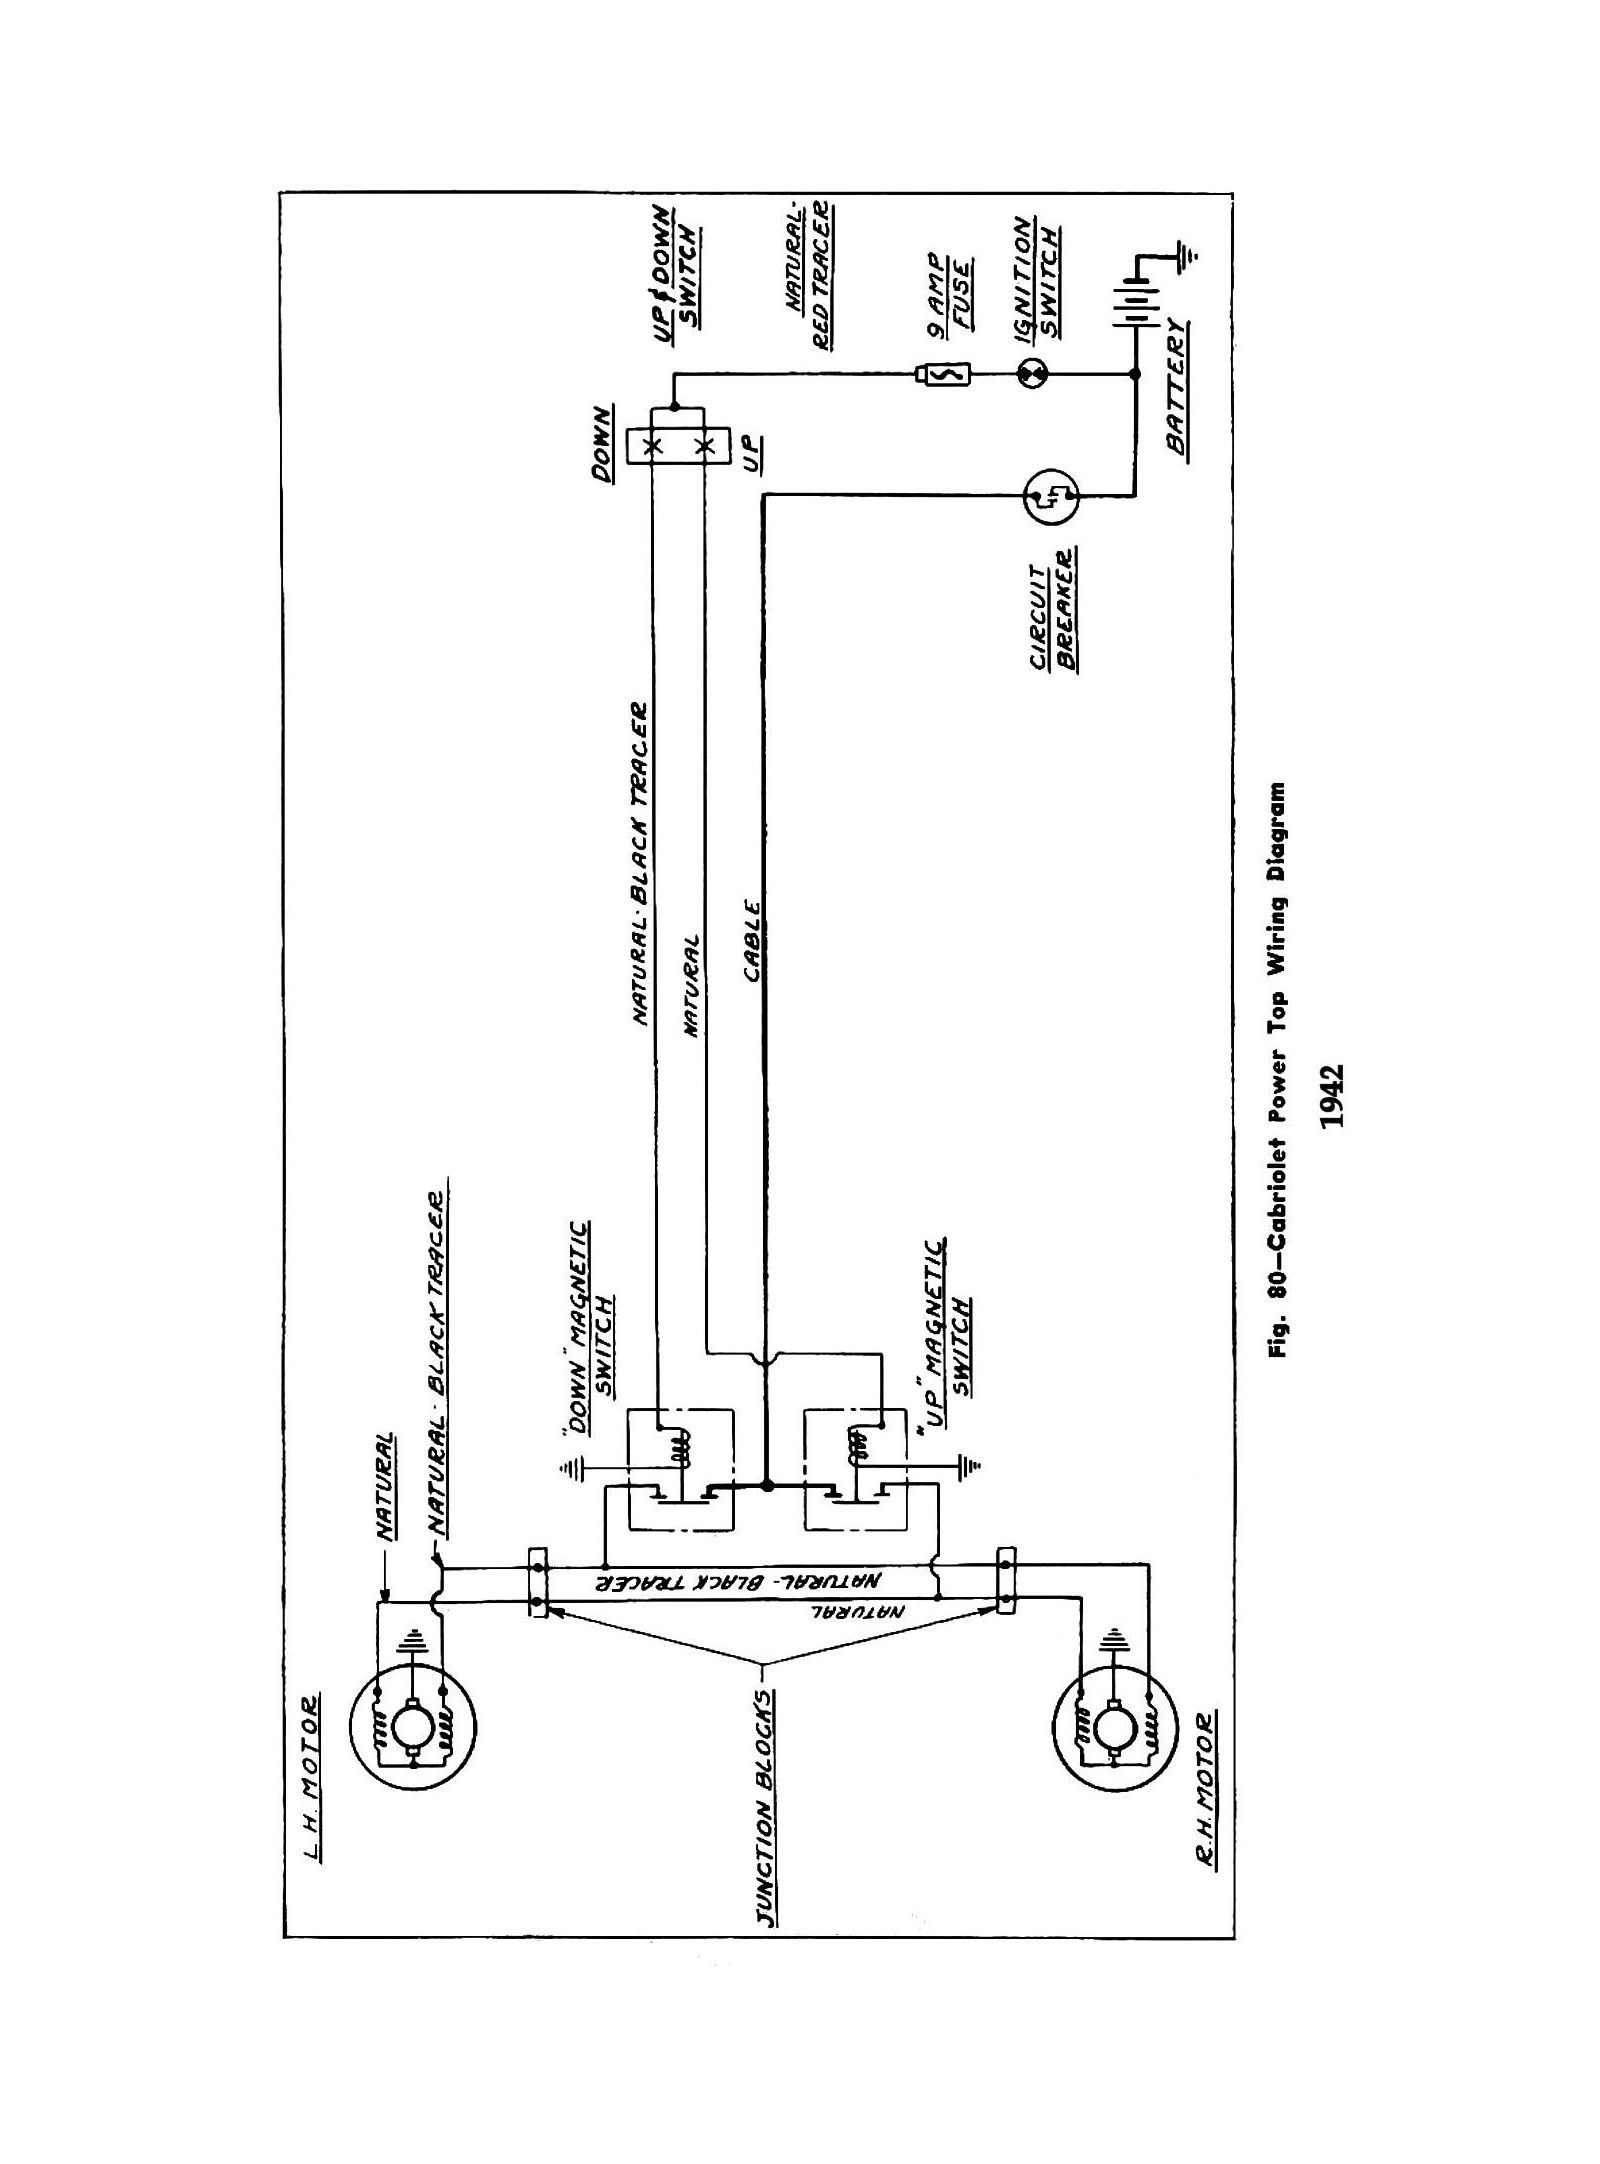 Wiring on Chevy Ignition Wiring Diagram